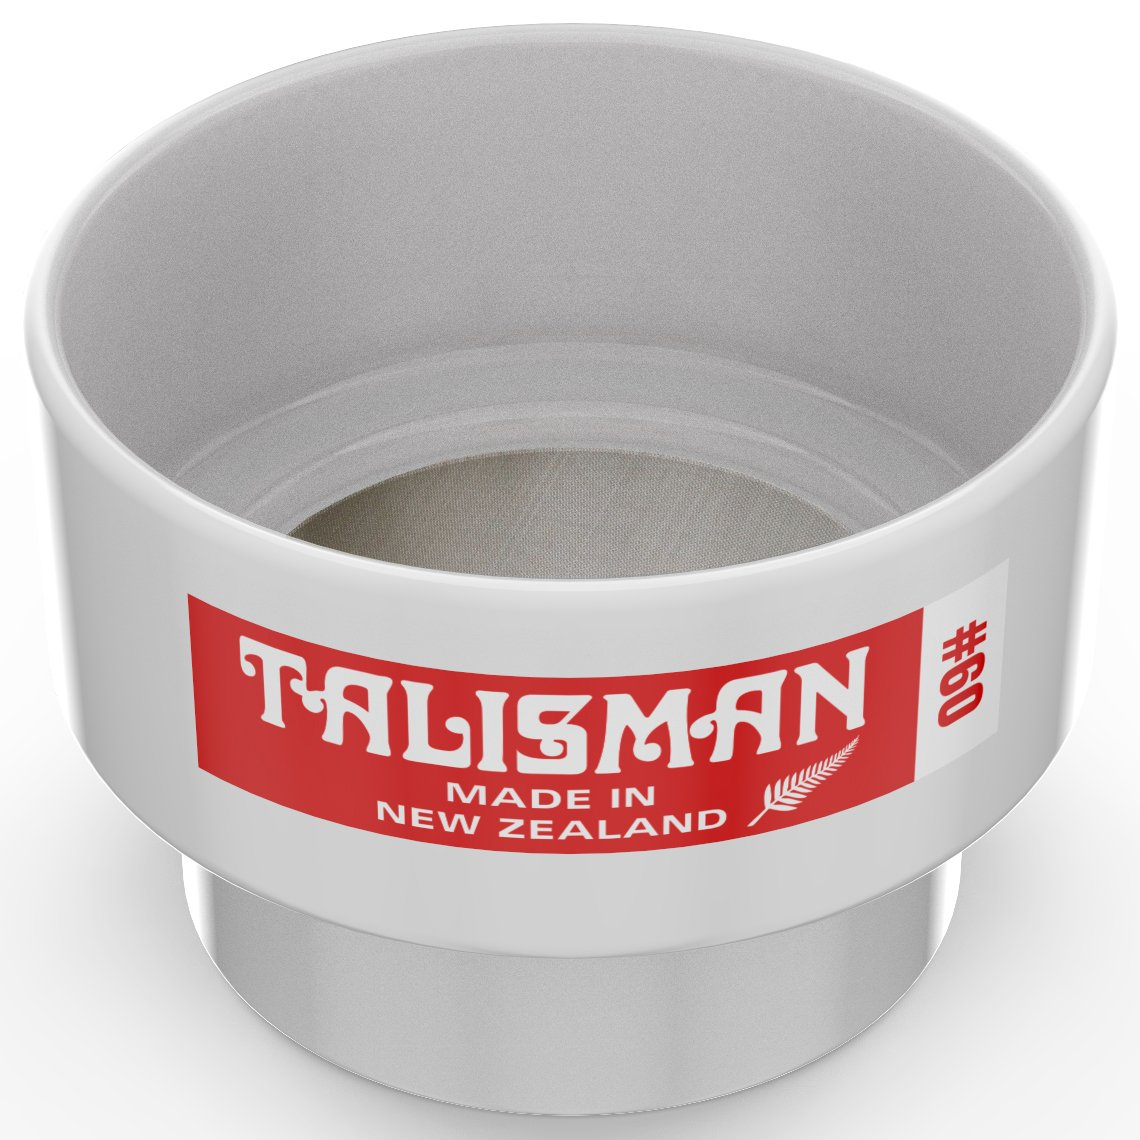 Talisman, Test Sieve, 60 Mesh, For Small Batch Slips, Glazes and Laboratory Use, 316 Steel Mesh, Polycarbonate Body by Talisman